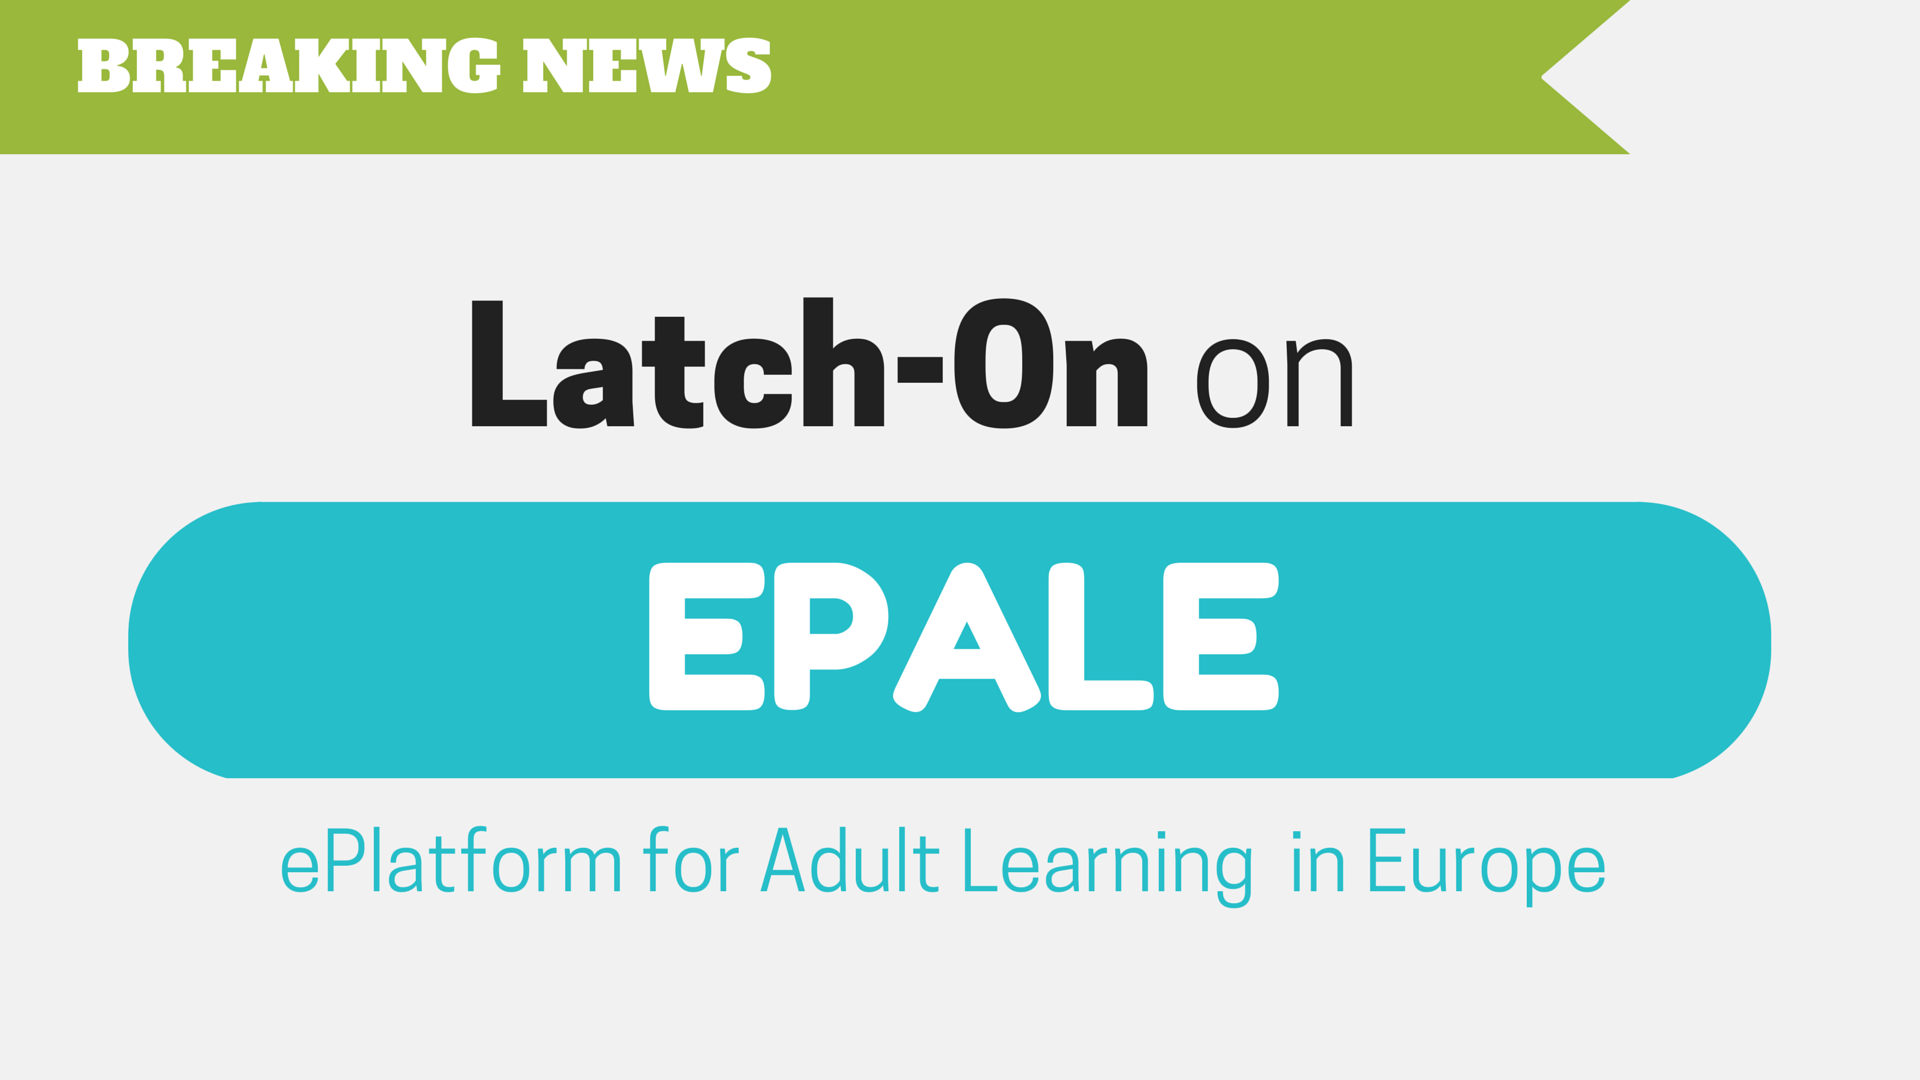 EPALE promotes Latch-On in Europe